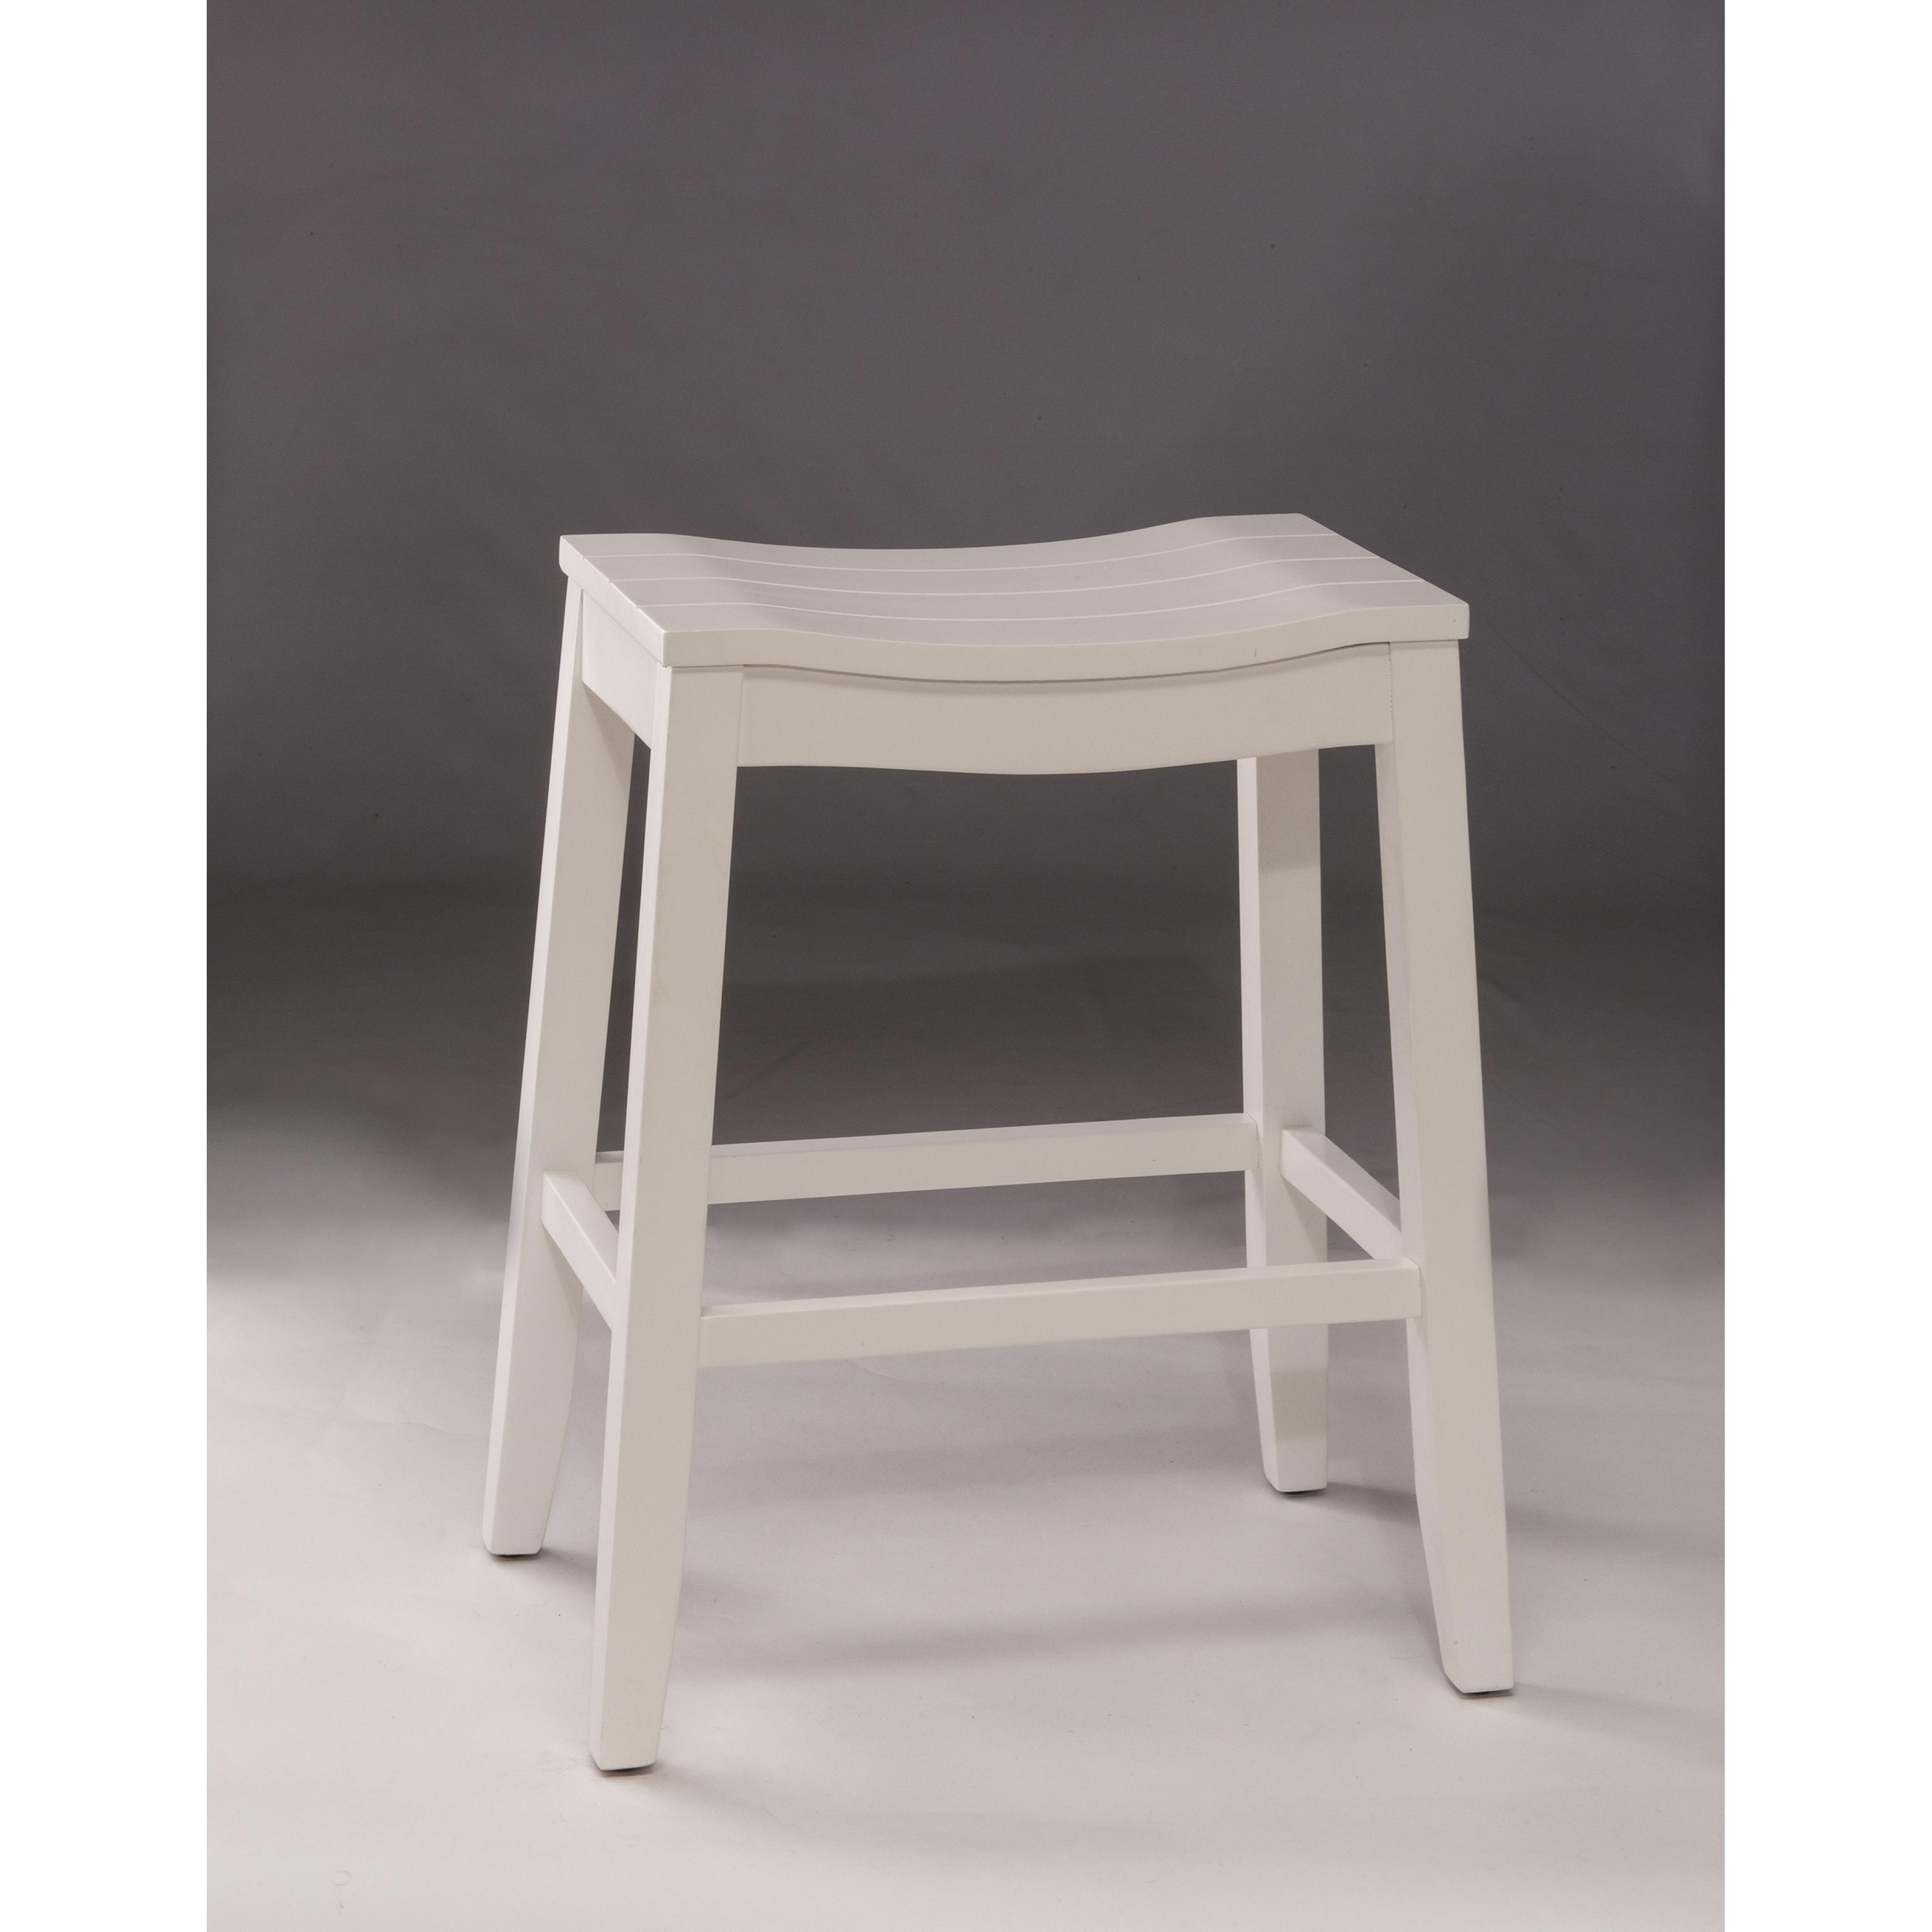 Hillsdale Backless Bar Stools White Backless Non-Swivel Bar Stool  sc 1 st  Westrich Furniture u0026 Appliances & Hillsdale Backless Bar Stools White Backless Non-Swivel Bar Stool ... islam-shia.org